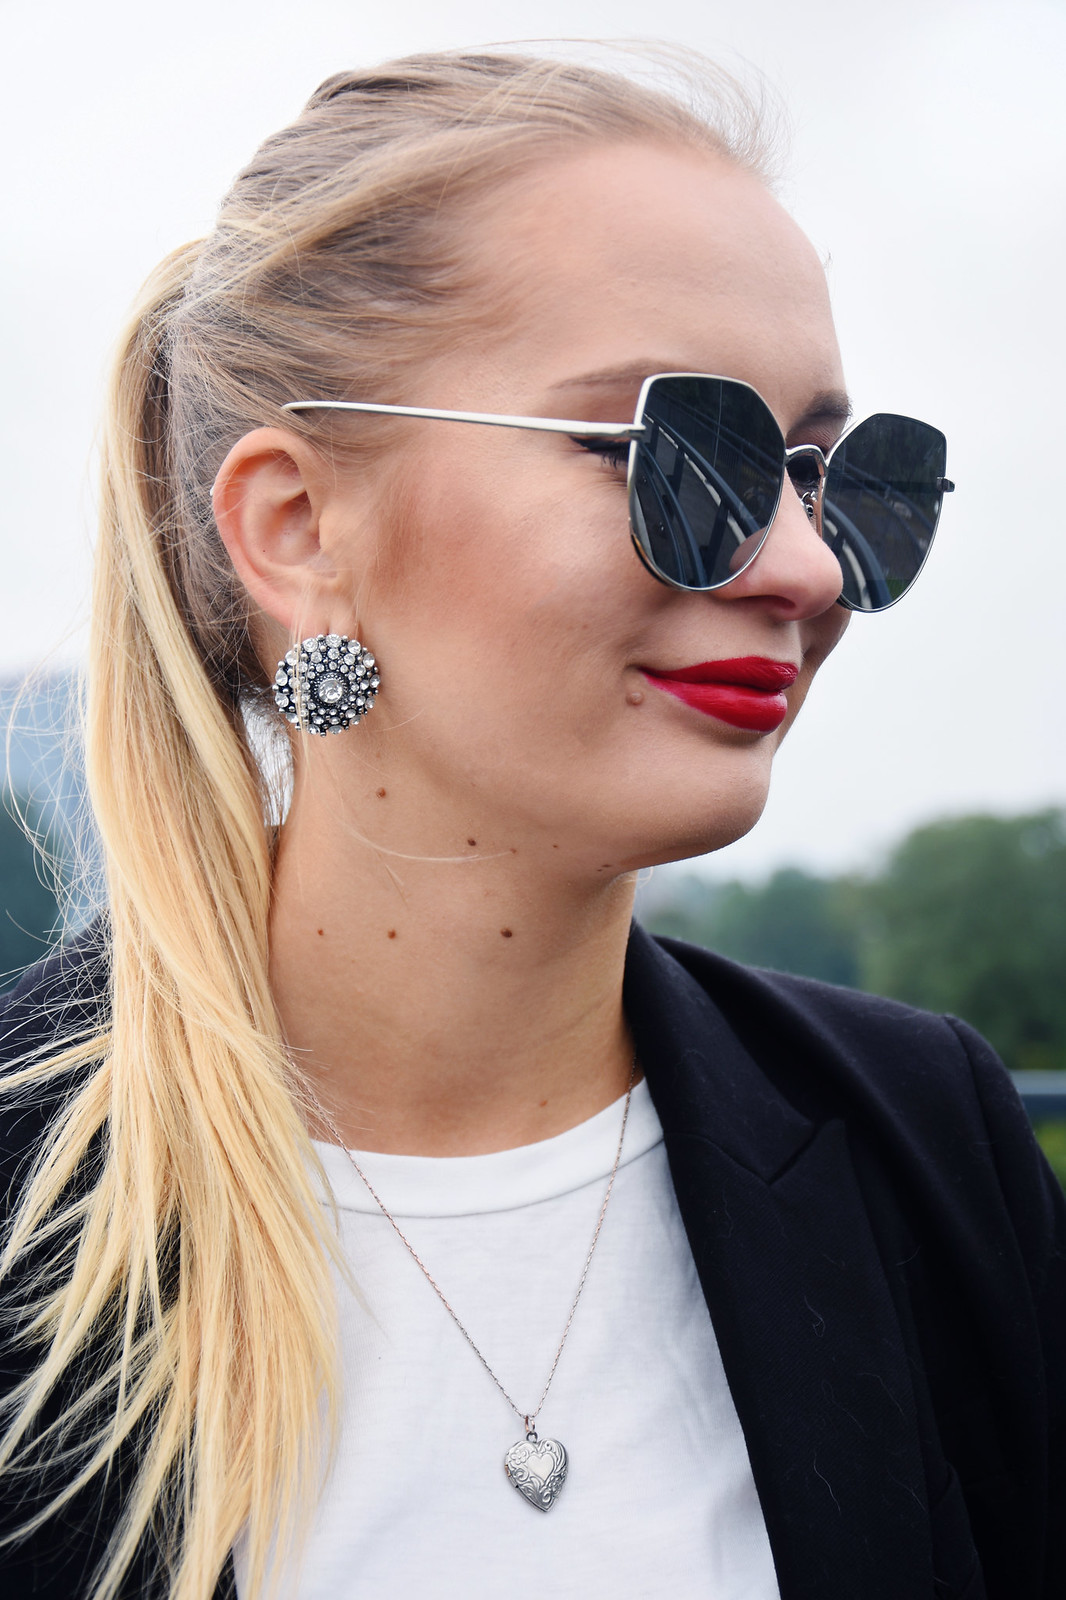 Cat eye style sunglasses outfit inspiration